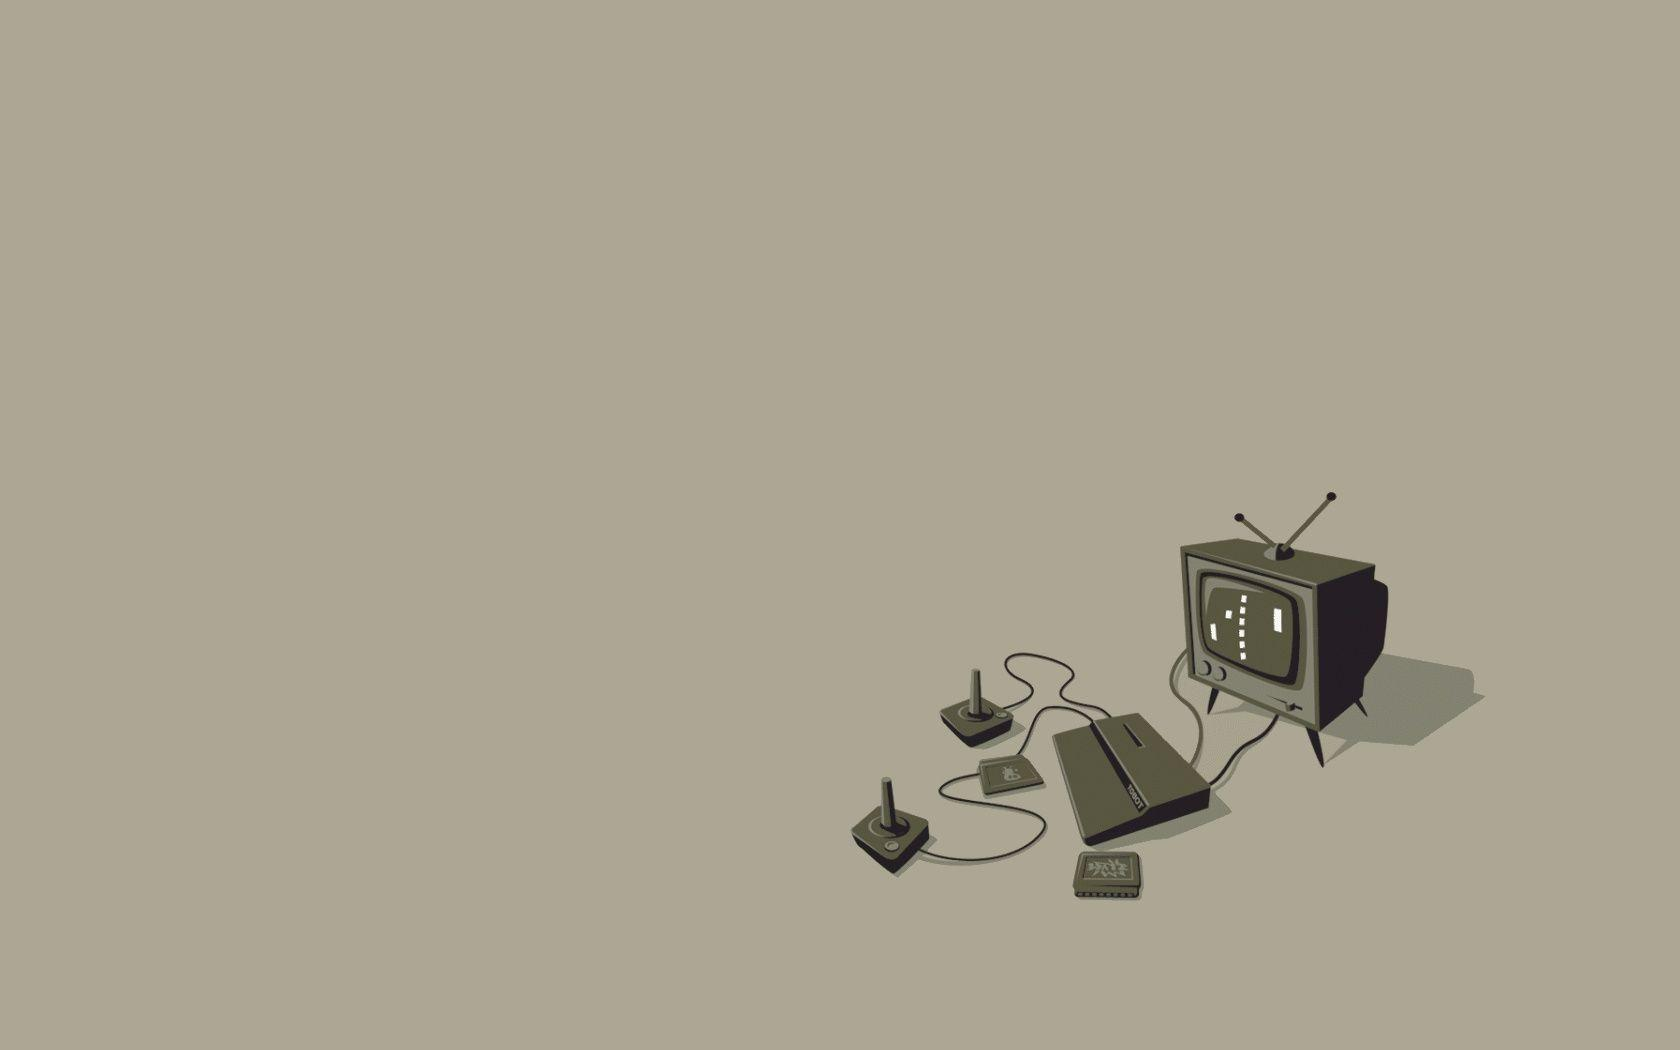 retro game console wallpaper - photo #21